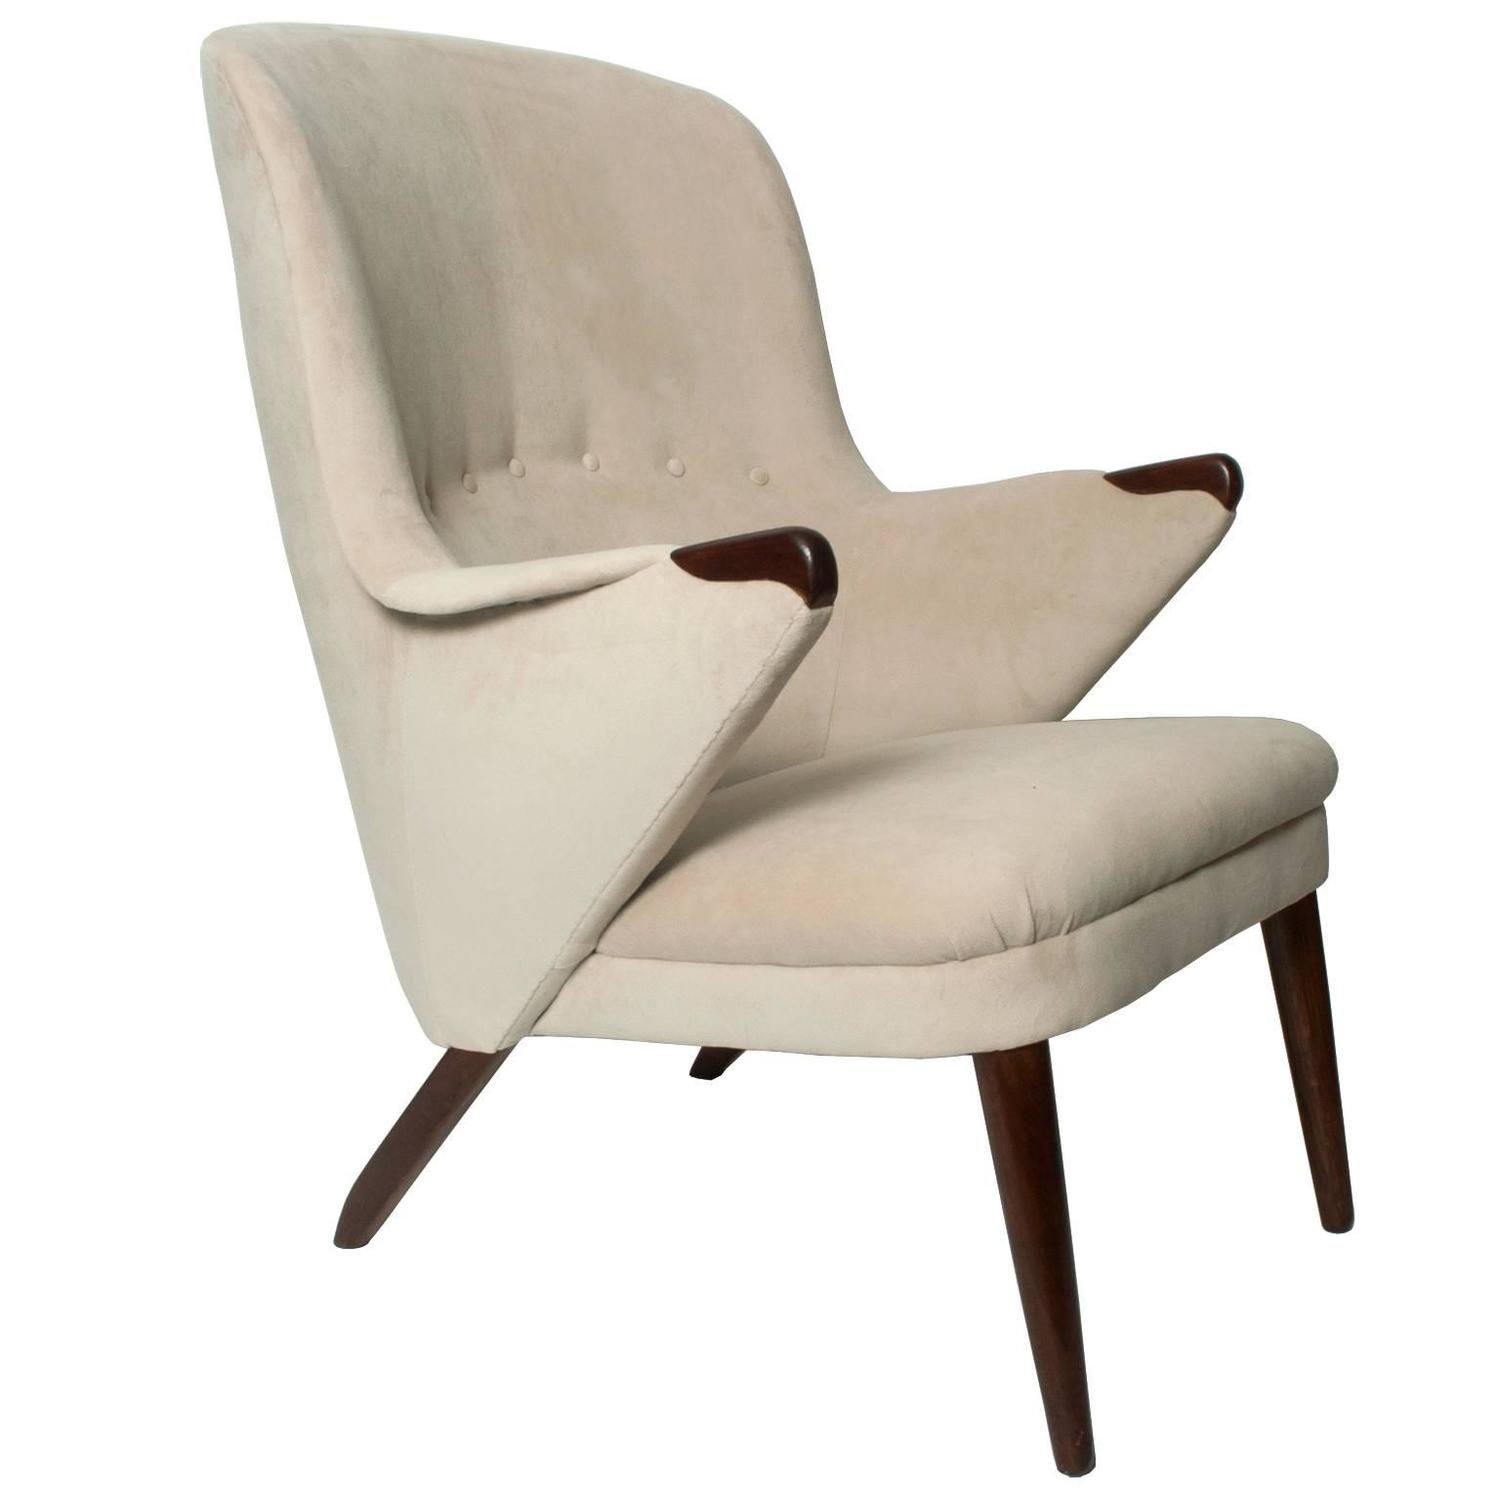 Scandinavian Modern Curved High Back Upholstered Lounge Chair With Teak Legs For At 1stdibs